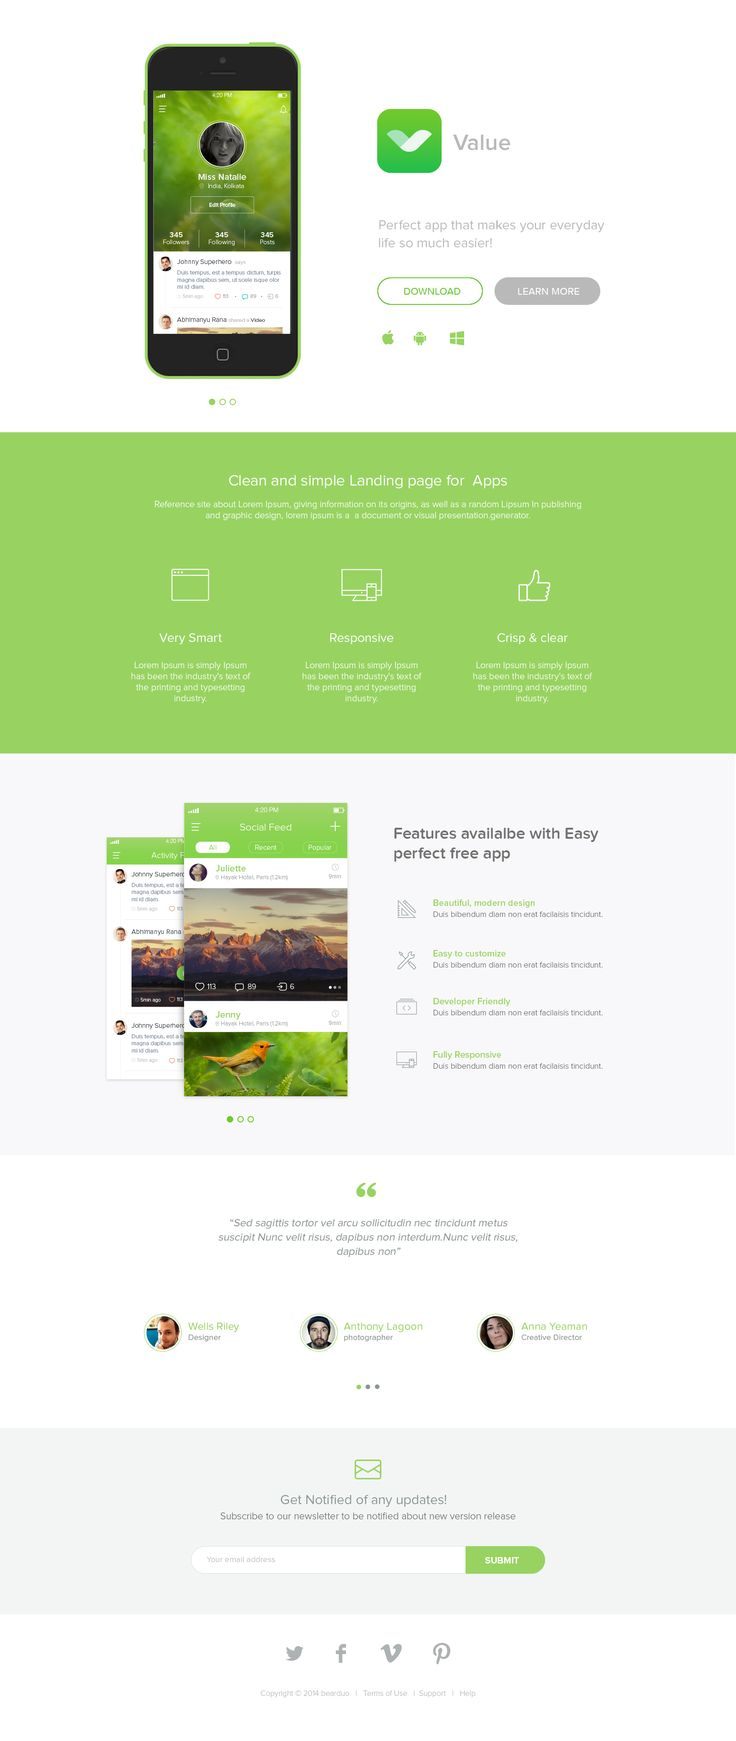 30 best app landing page images on Pinterest | App landing page ...